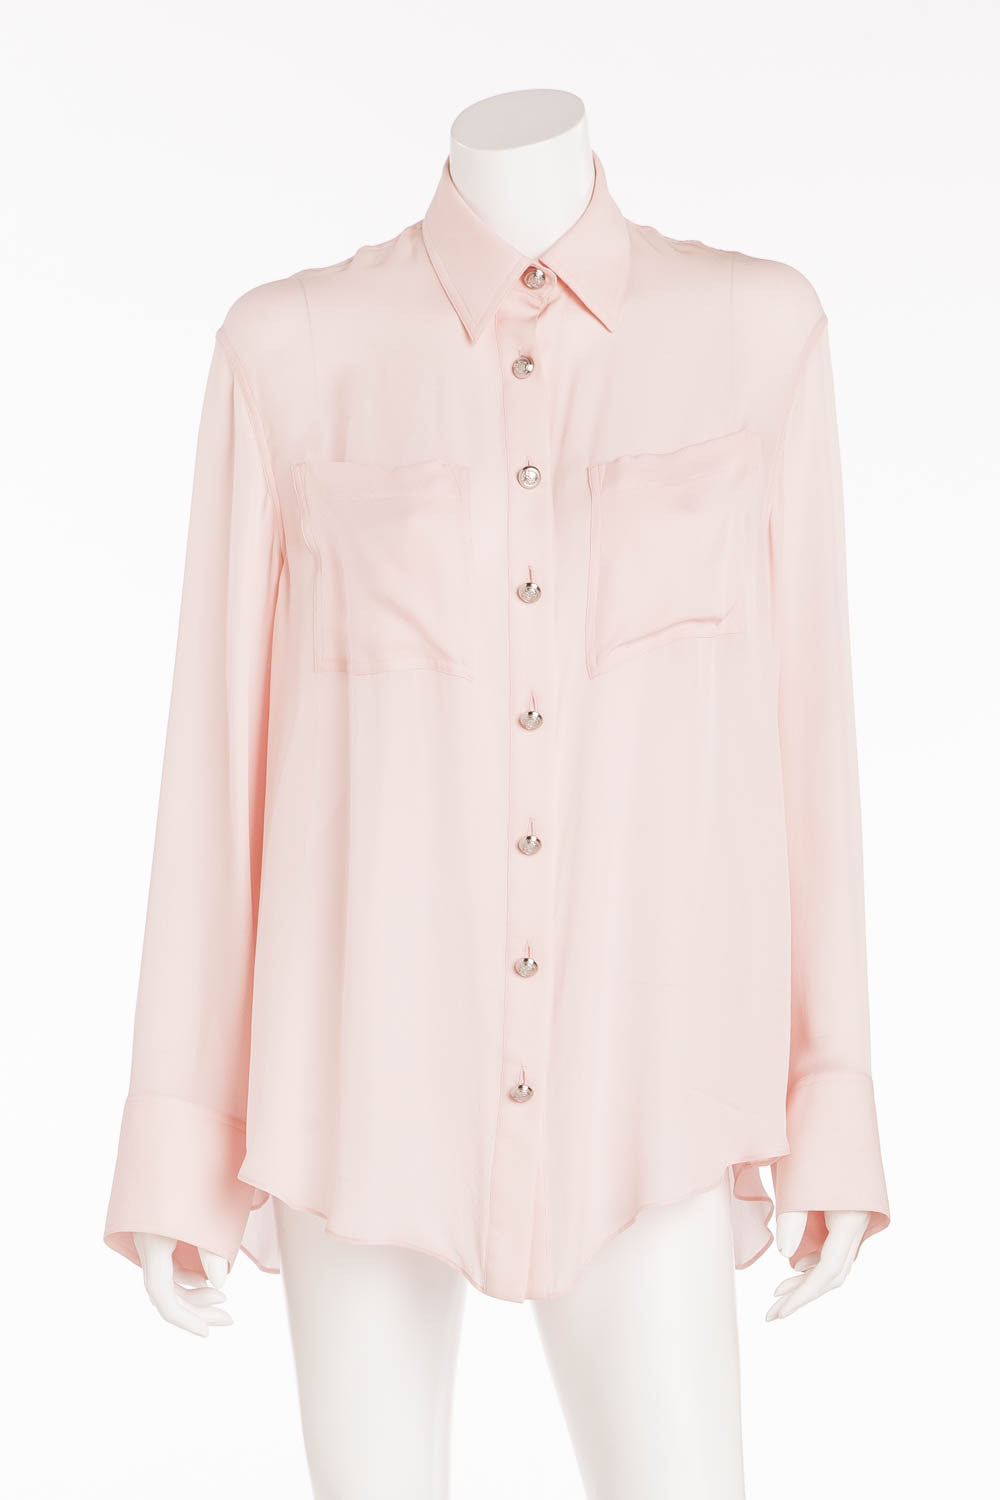 Balmain - Long Sleeve Pink Button Up Shirt - FR 38